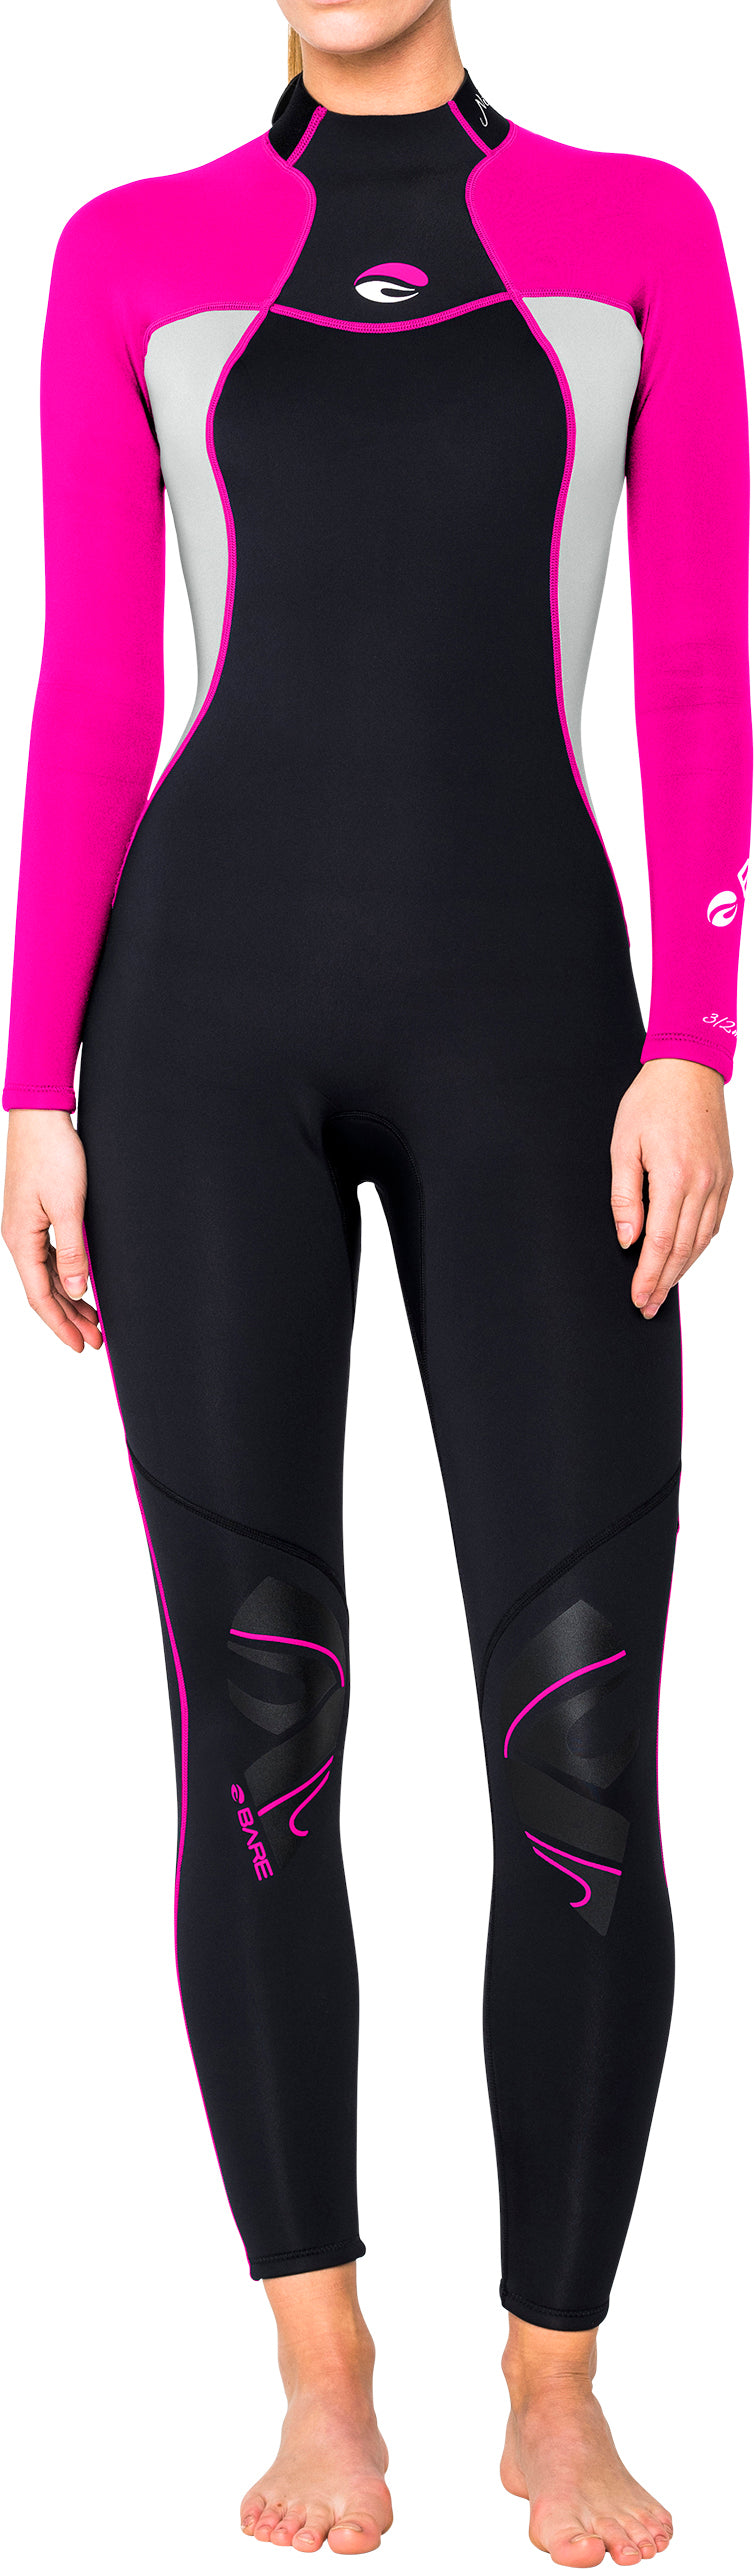 Bare Ladies 3/2mm Nixie full wetsuit Size 4, 8 and 10